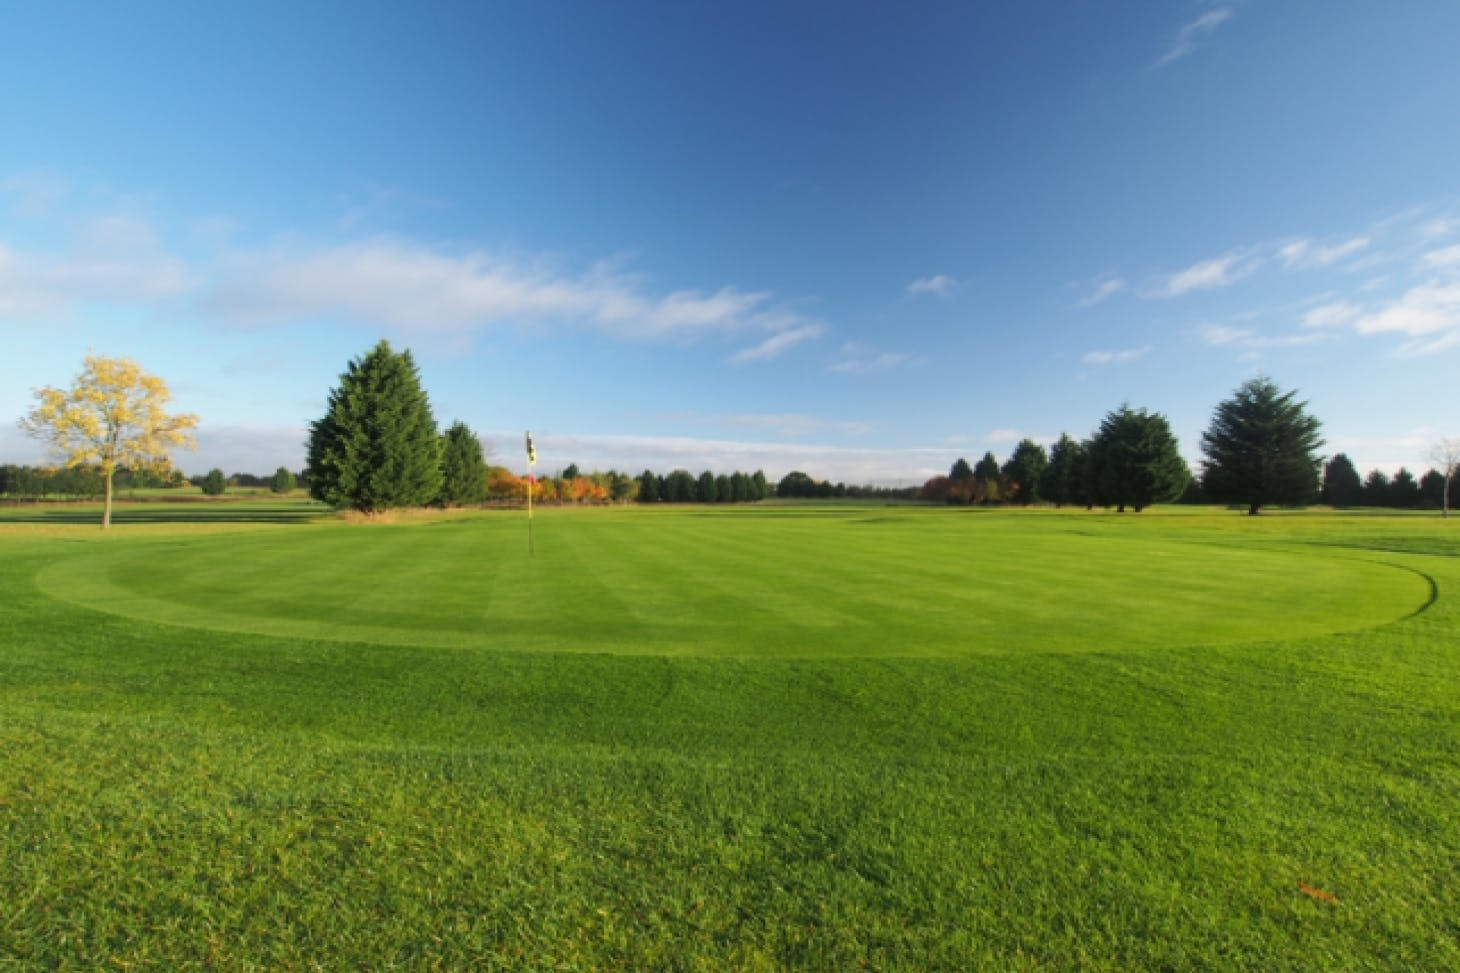 Bird Hills Golf Centre 18 hole | Yes golf course